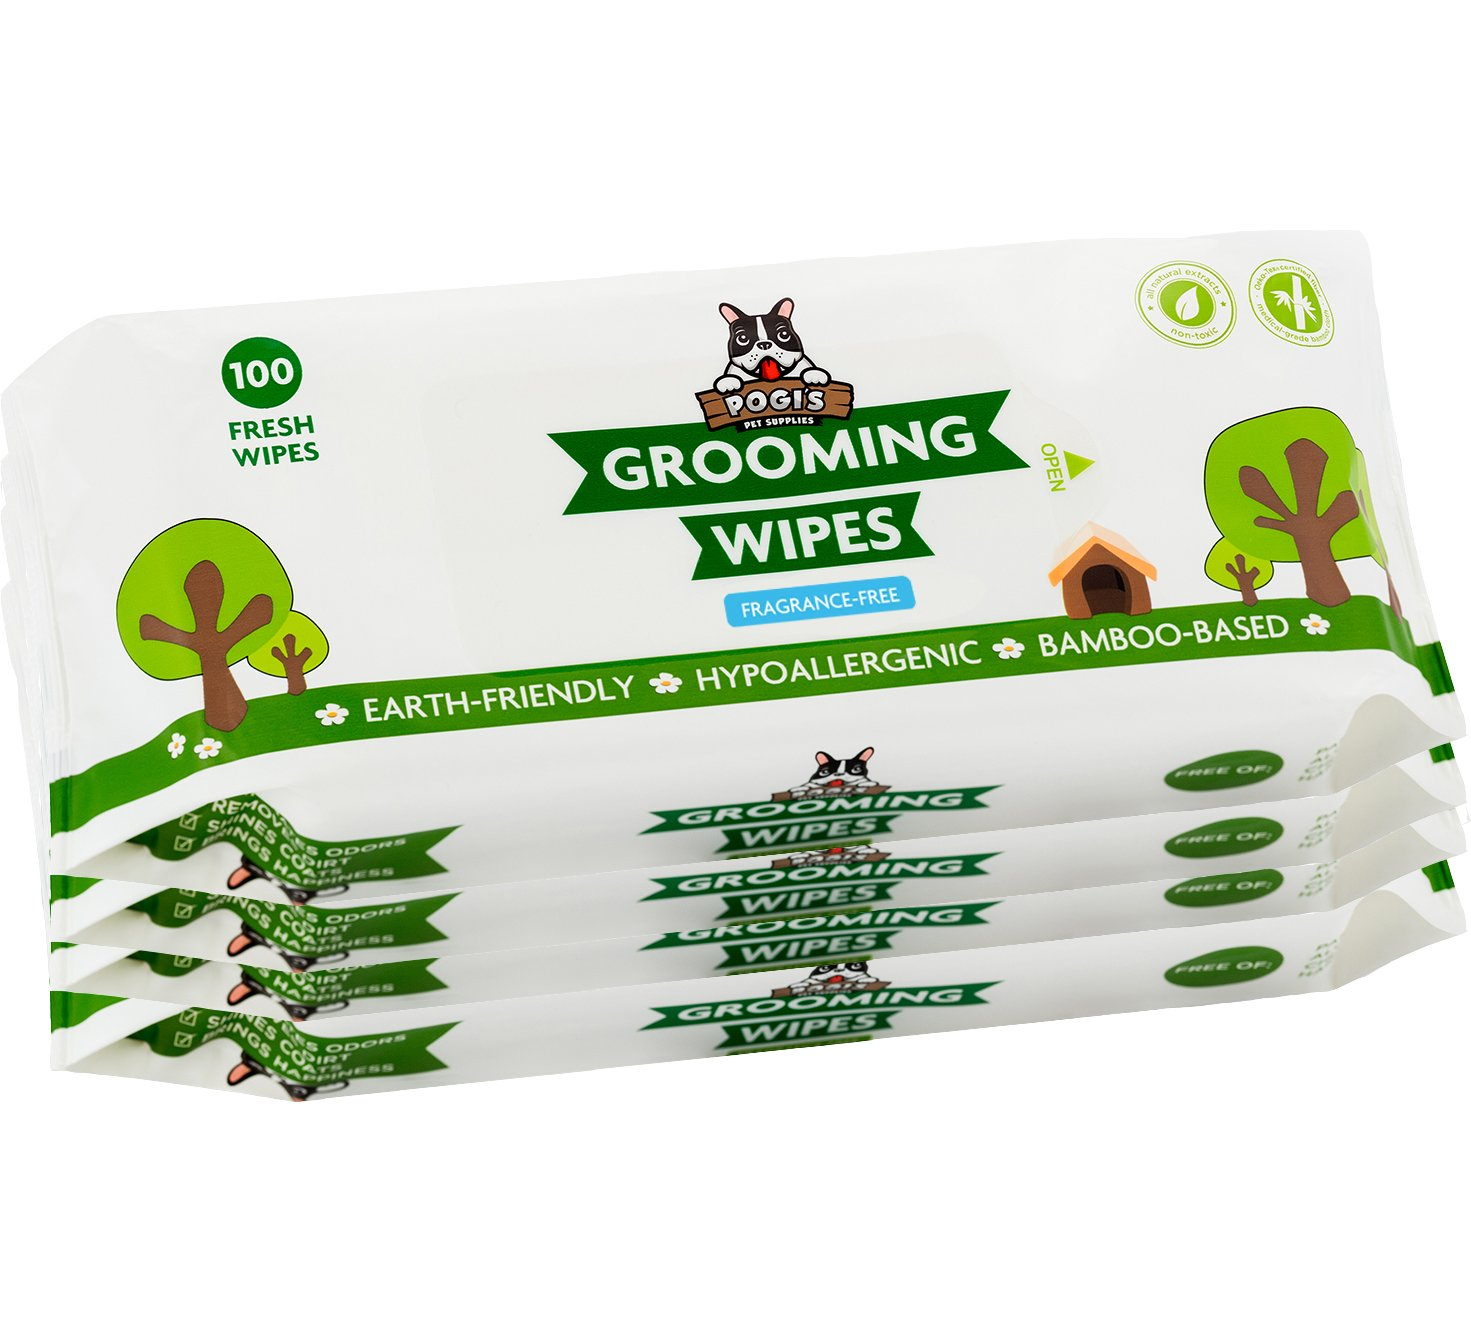 Pogi's Grooming Wipes - 400 Deodorizing Wipes for Dogs & Cats - Large, Hypoallergenic, Fragrance-Free